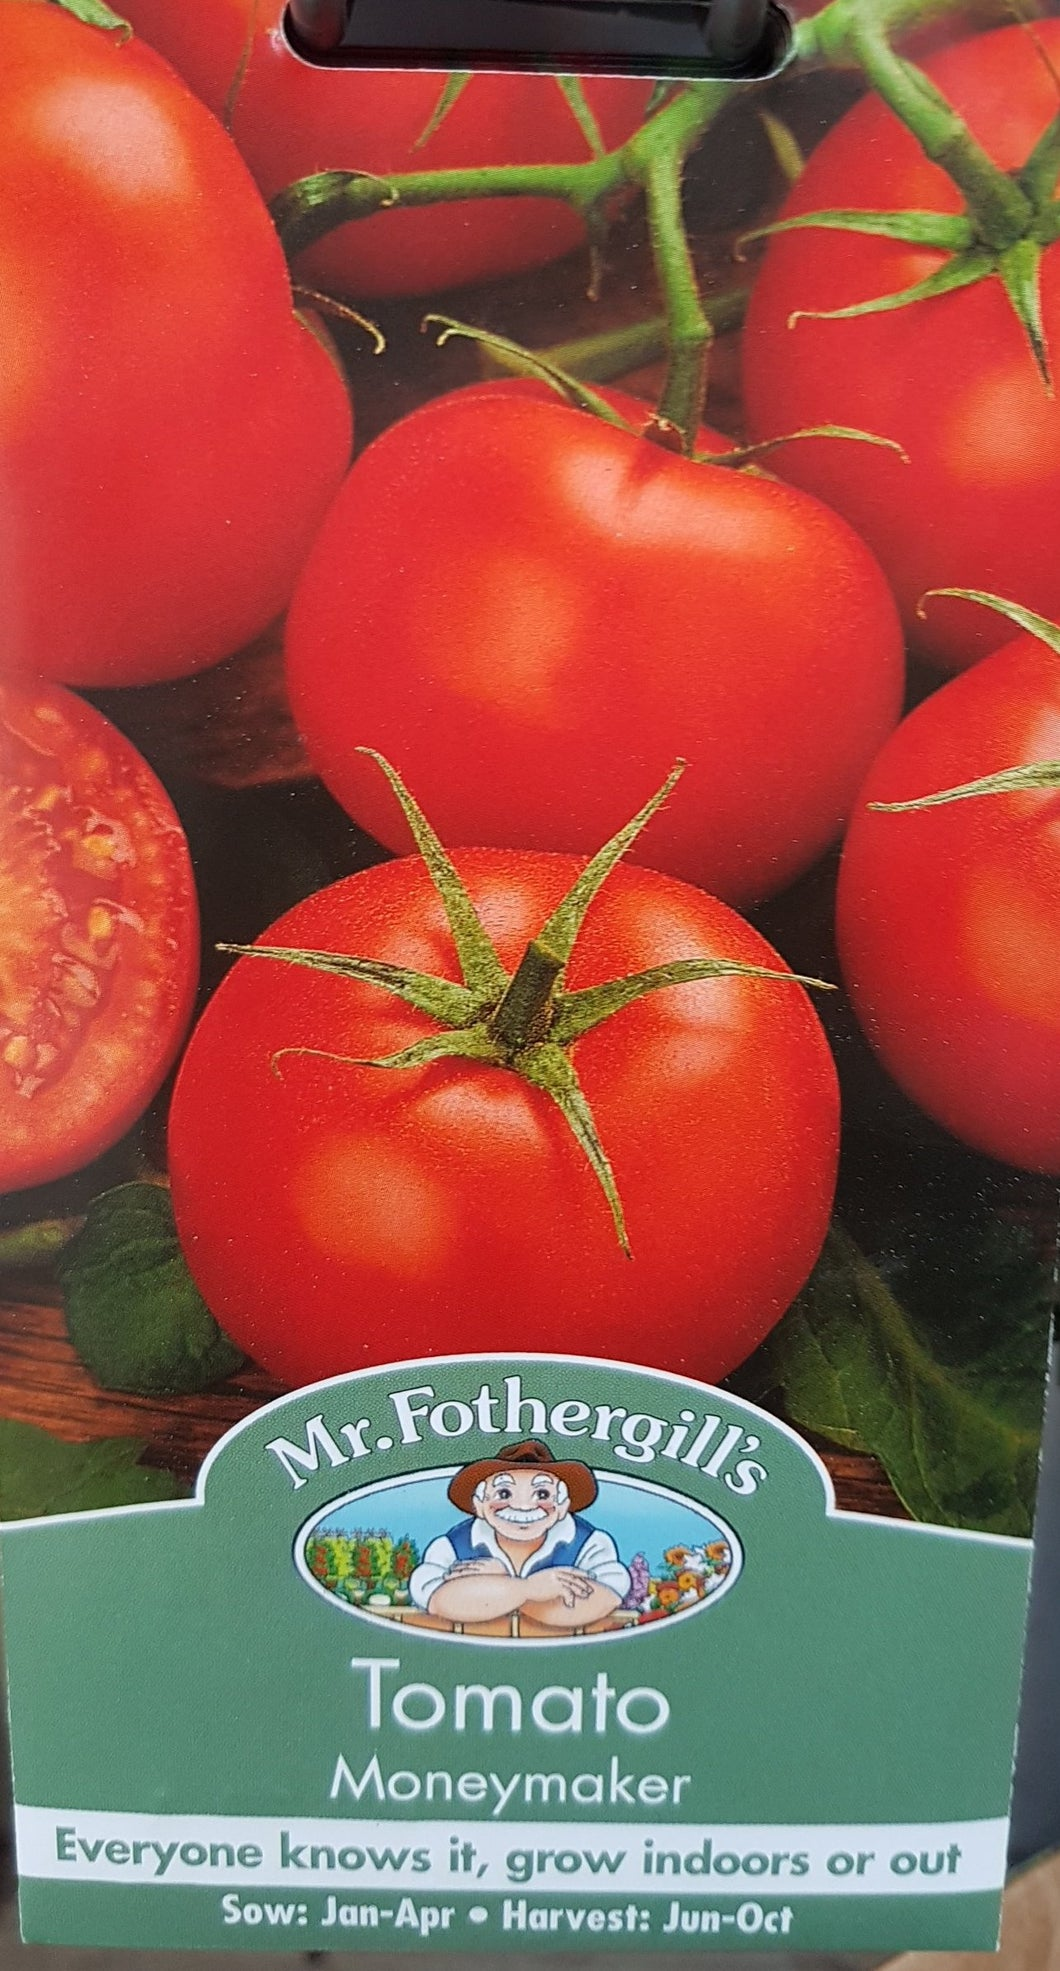 Tomato (Moneymaker)